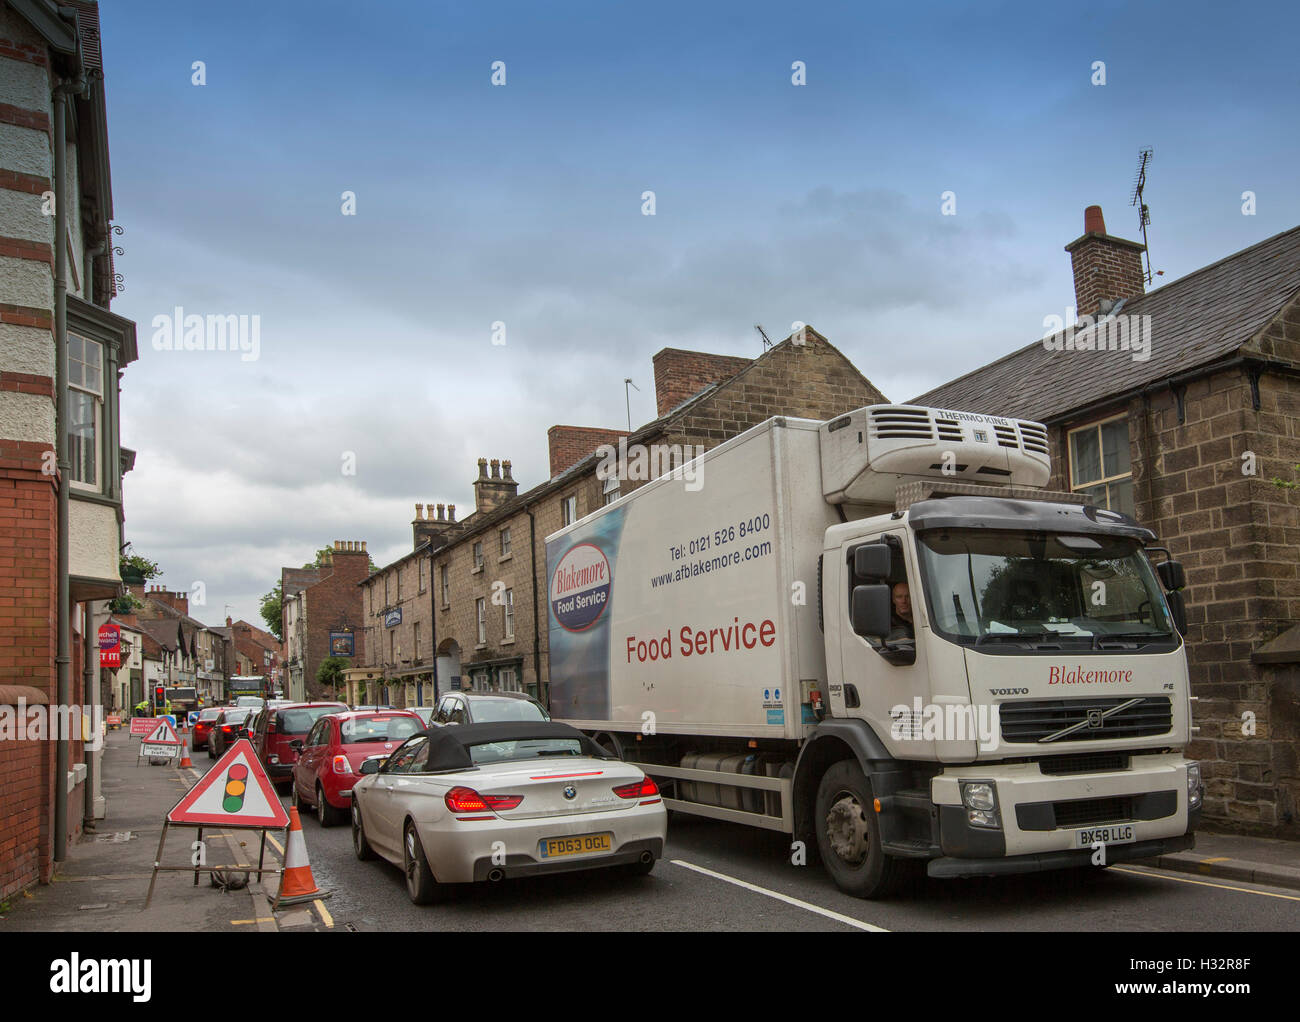 Roadworks in narrow street in English village of Belper with traffic lights, signs, and traffic congestion with - Stock Image